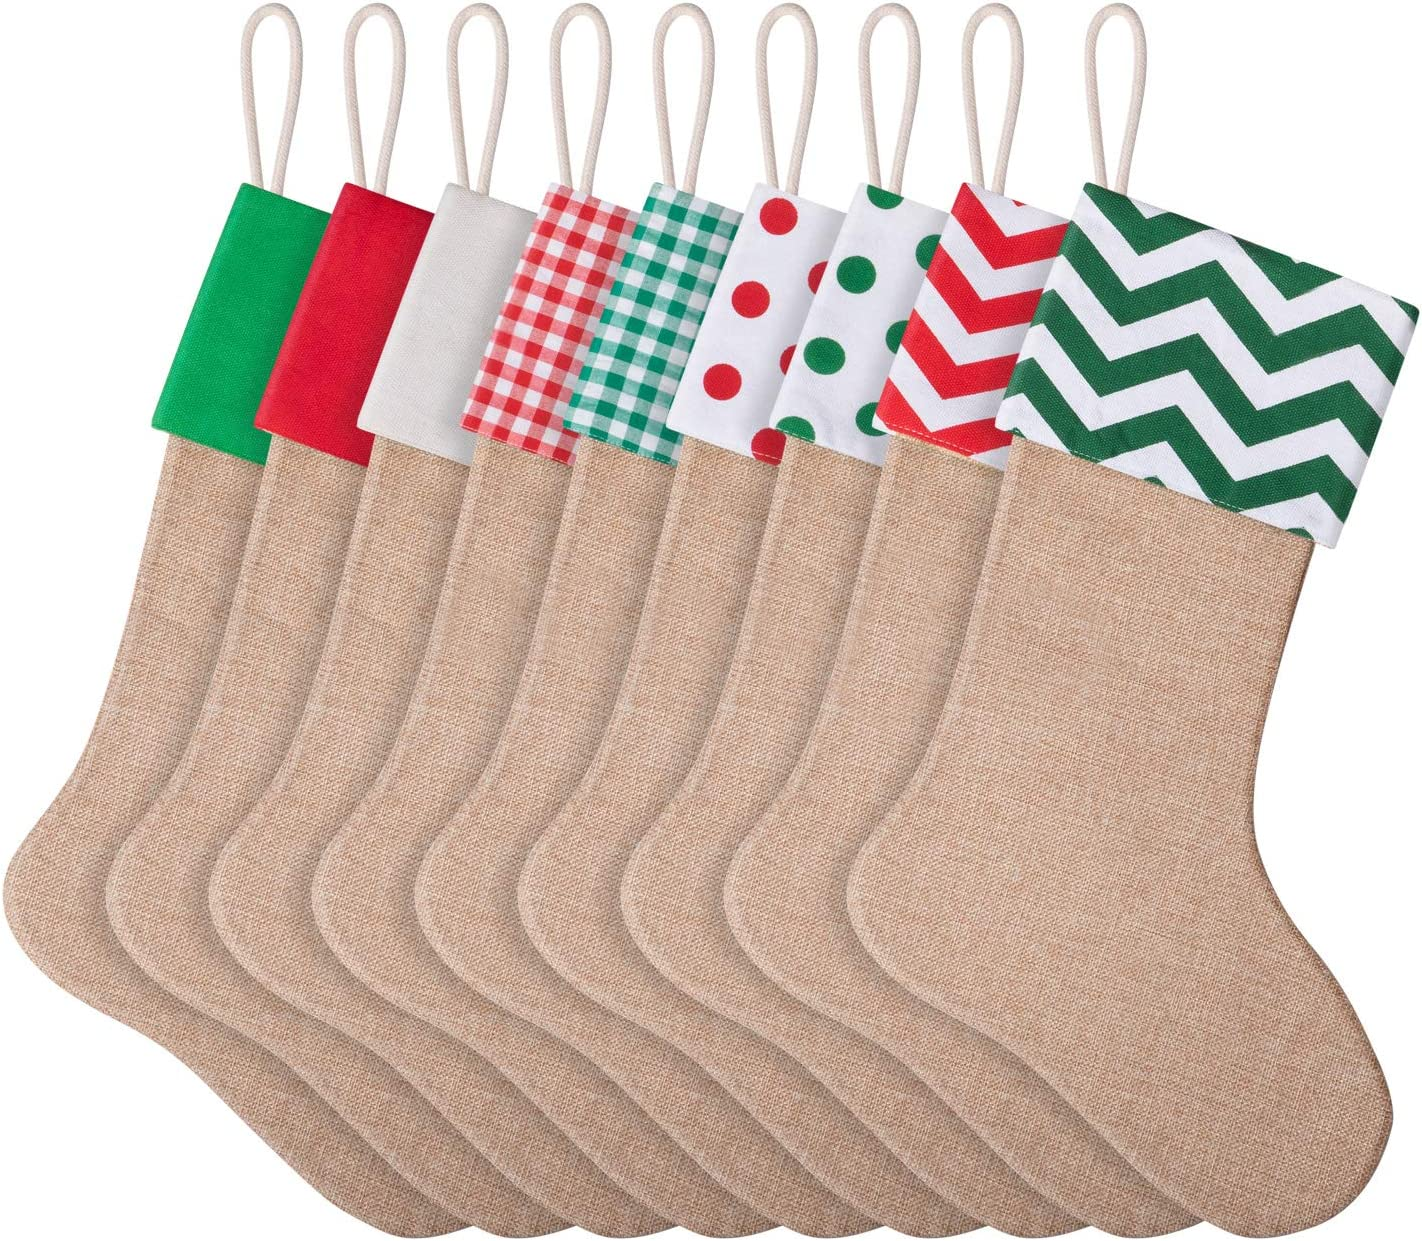 favide 9 Pieces Christmas Burlap Popular brand in Price reduction the world Xmas Stockings Fireplace Hangin